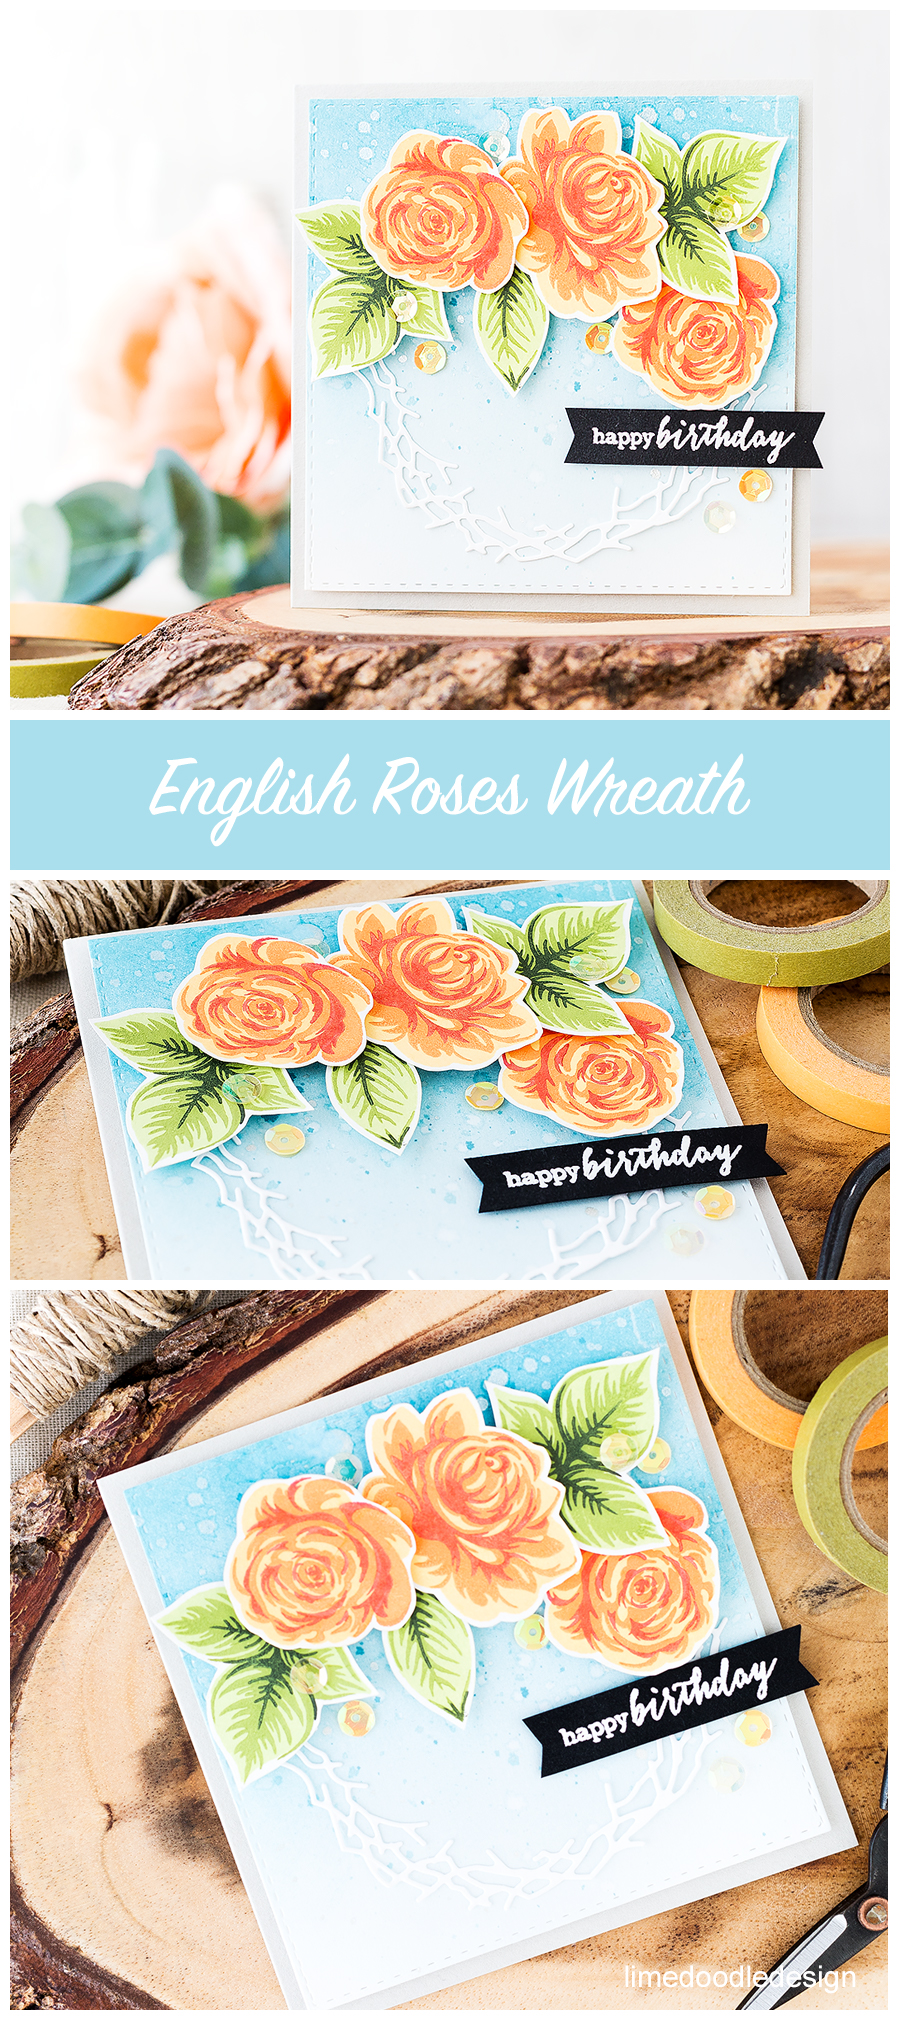 Stamp layering english roses birthday wreath card. Find out more about this card by clicking on the following link: http://limedoodledesign.com/2016/08/stamp-layering-english-roses-birthday-wreath/